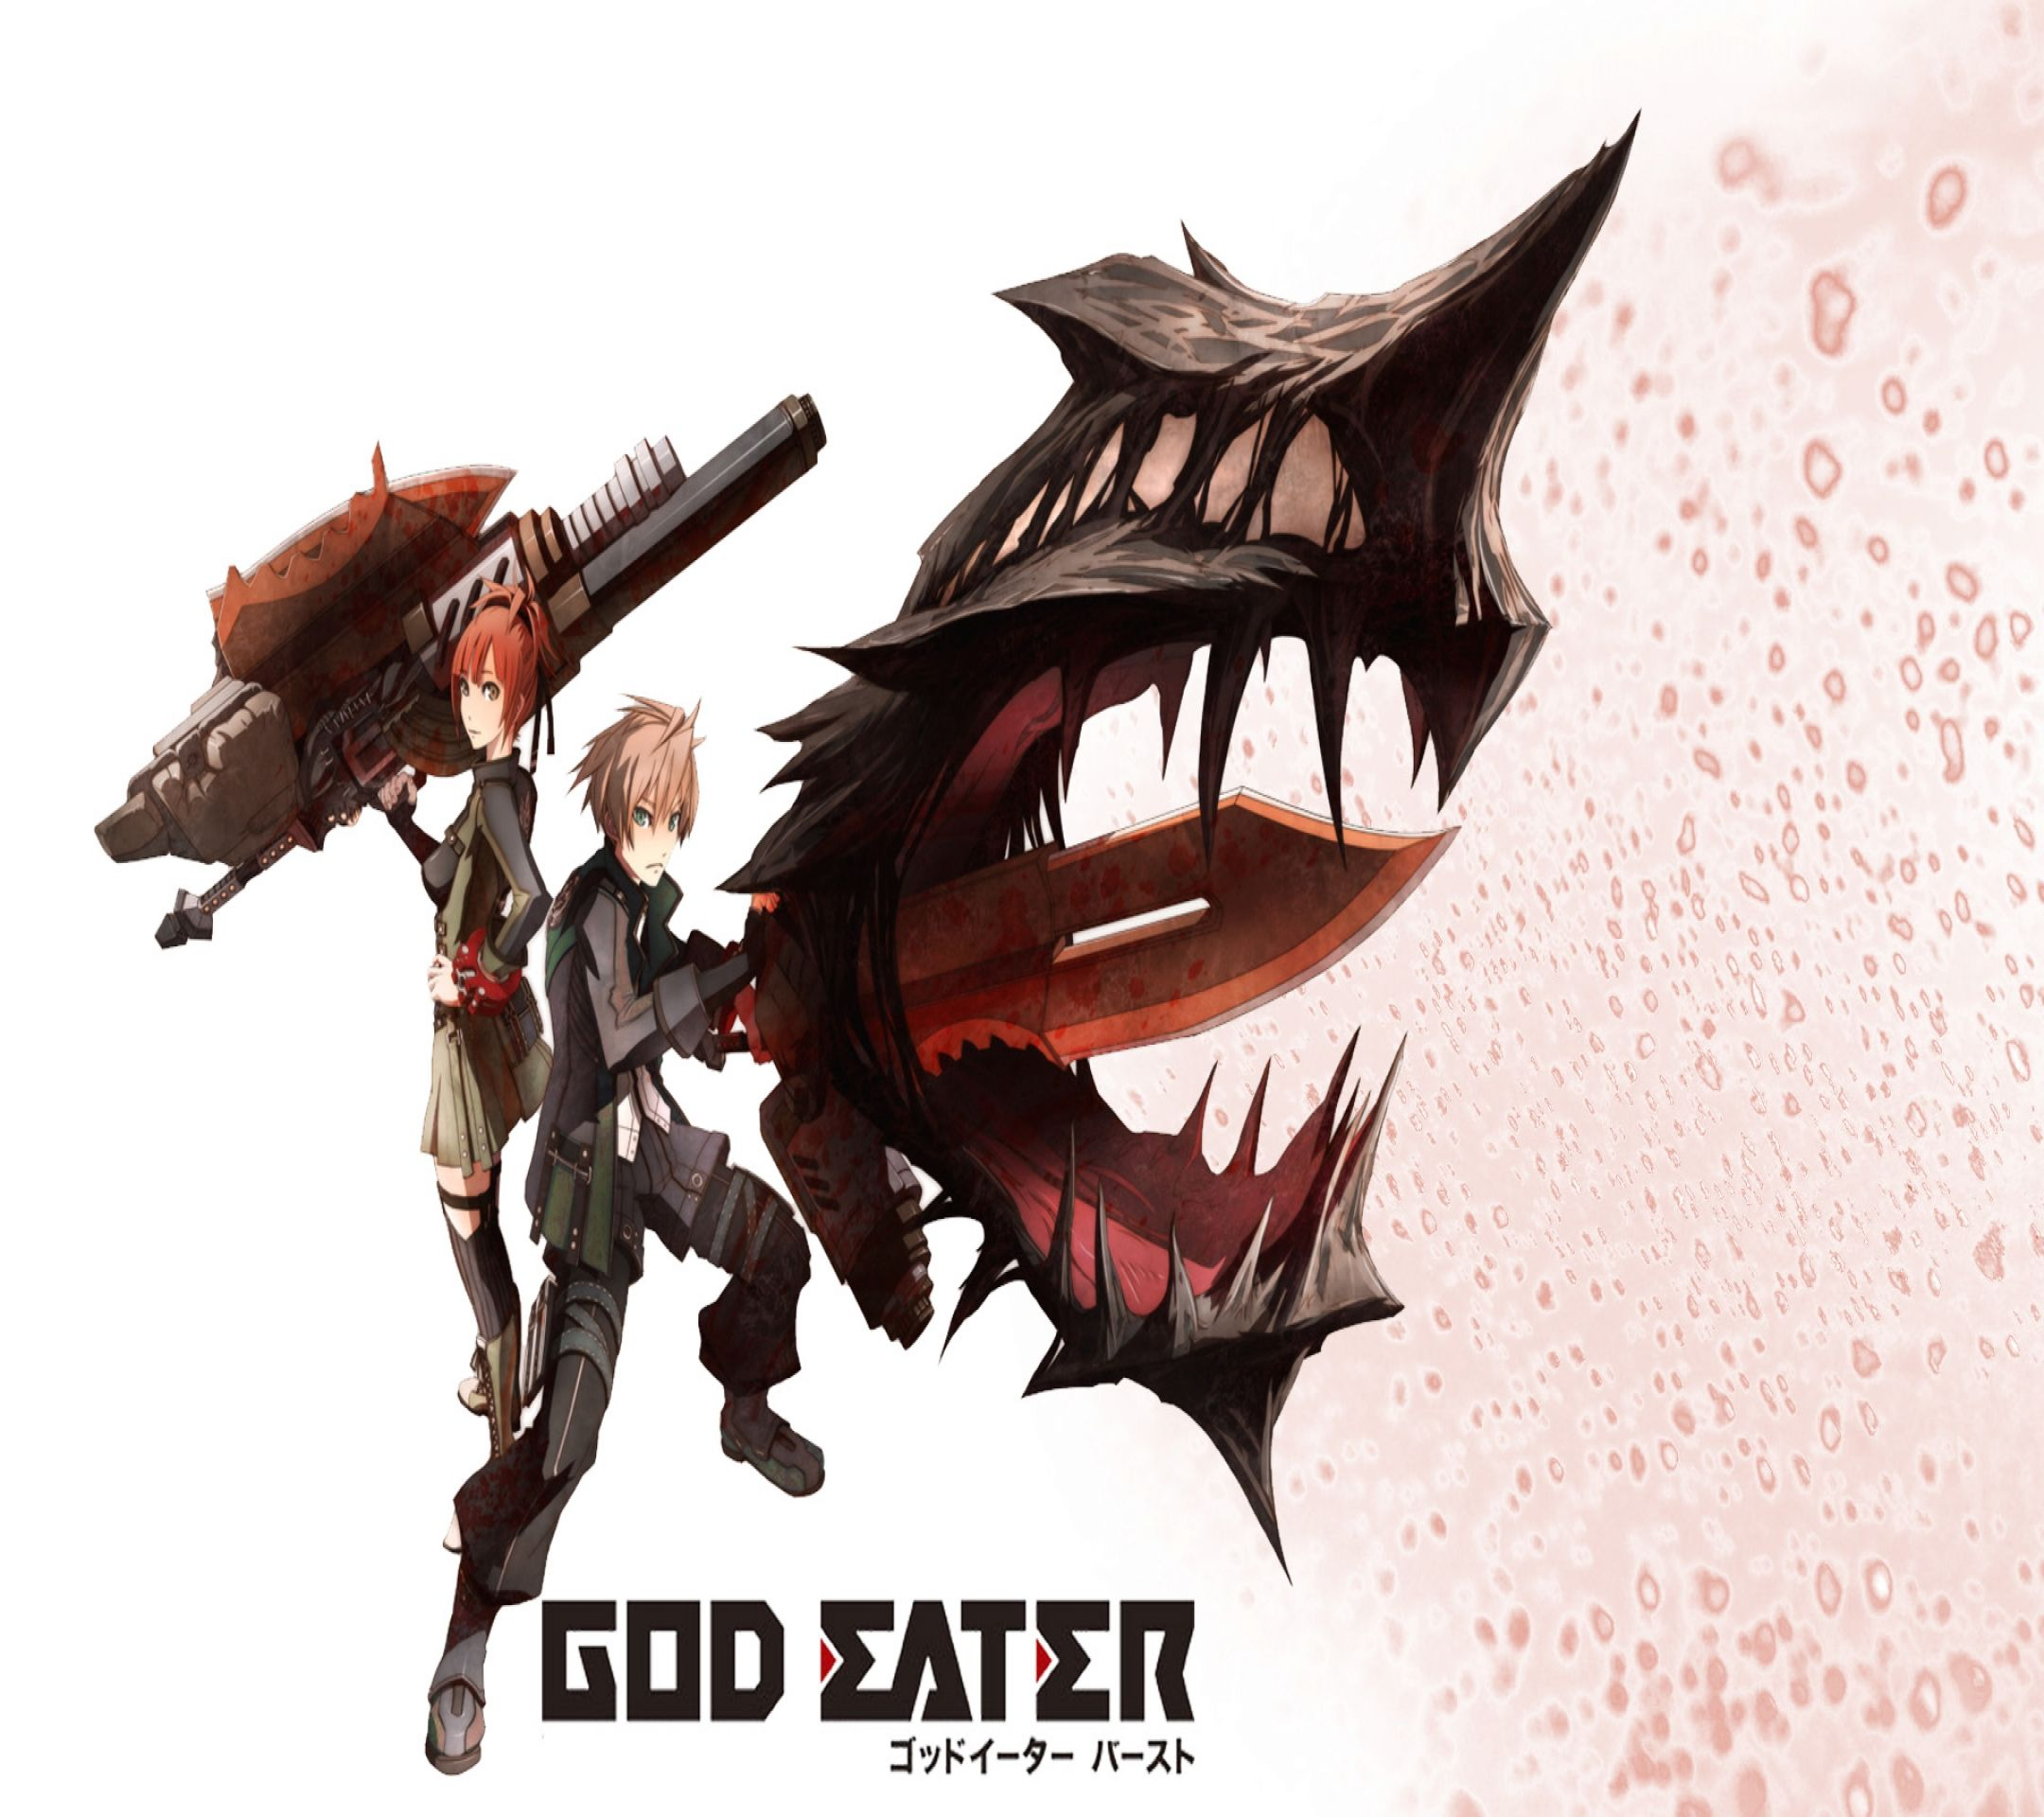 God Eater Anime Anime wallpaper, Latest anime, Anime